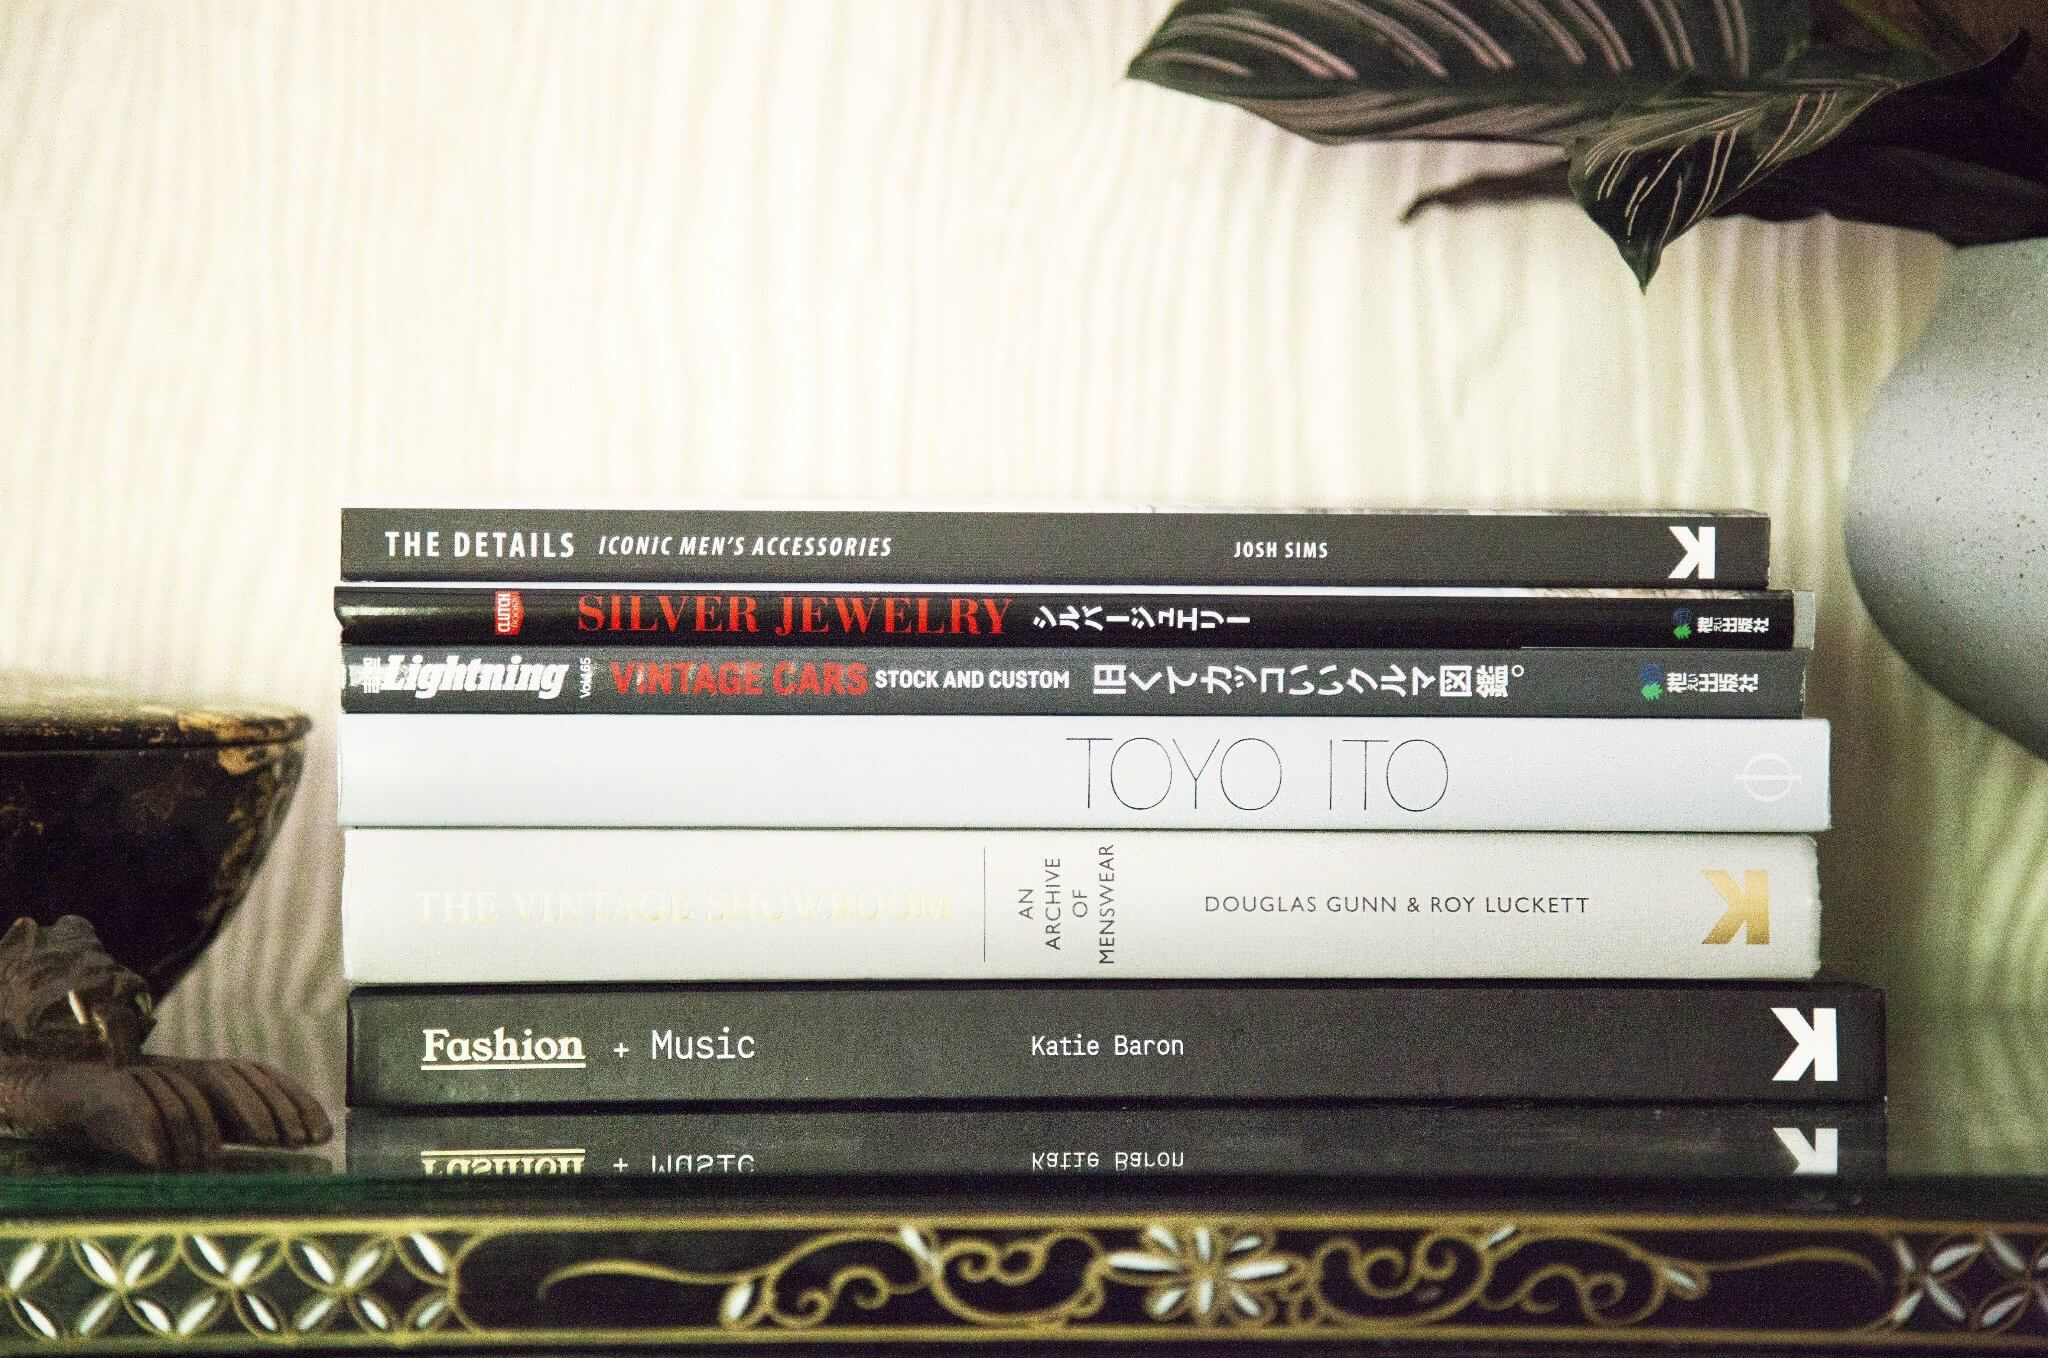 stack of books featuring the details by josh sims, lightning clutch silver jewelry and vintage cars, toyo ito, an archive of menswear by douglas gunn and roy luckett, and fashion plus music by katie baron